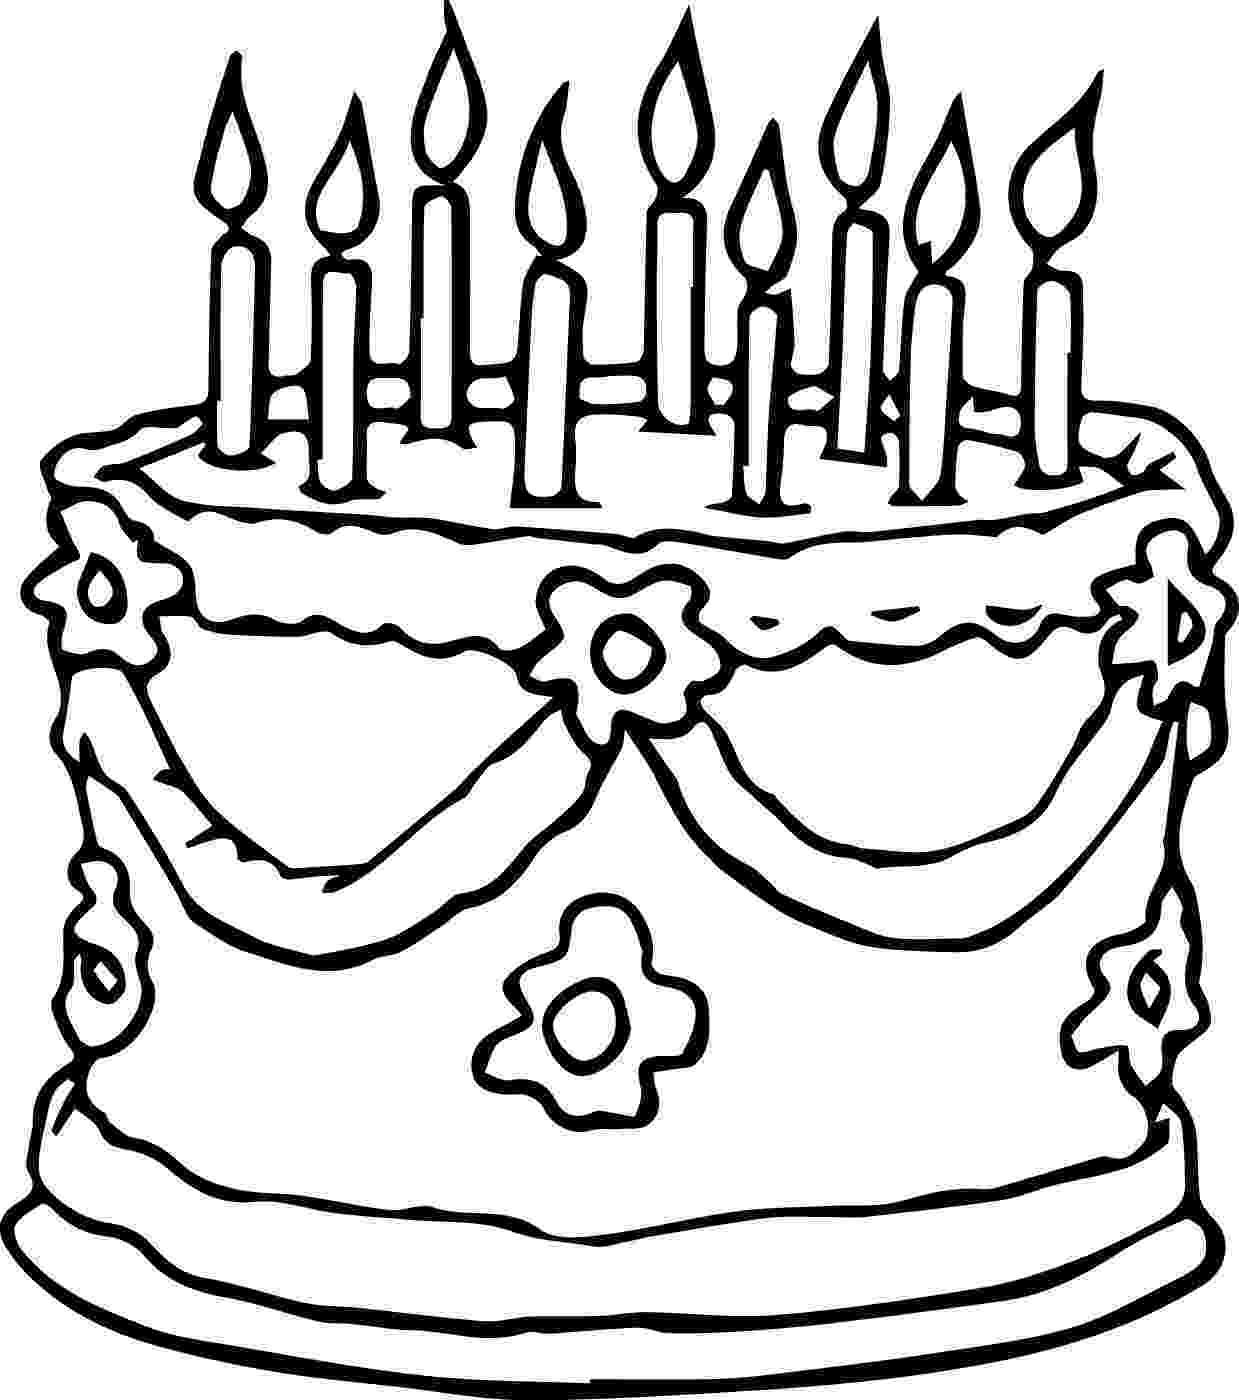 free colouring pages birthday cake wedding birthday cake coloring page wecoloringpagecom free cake pages colouring birthday